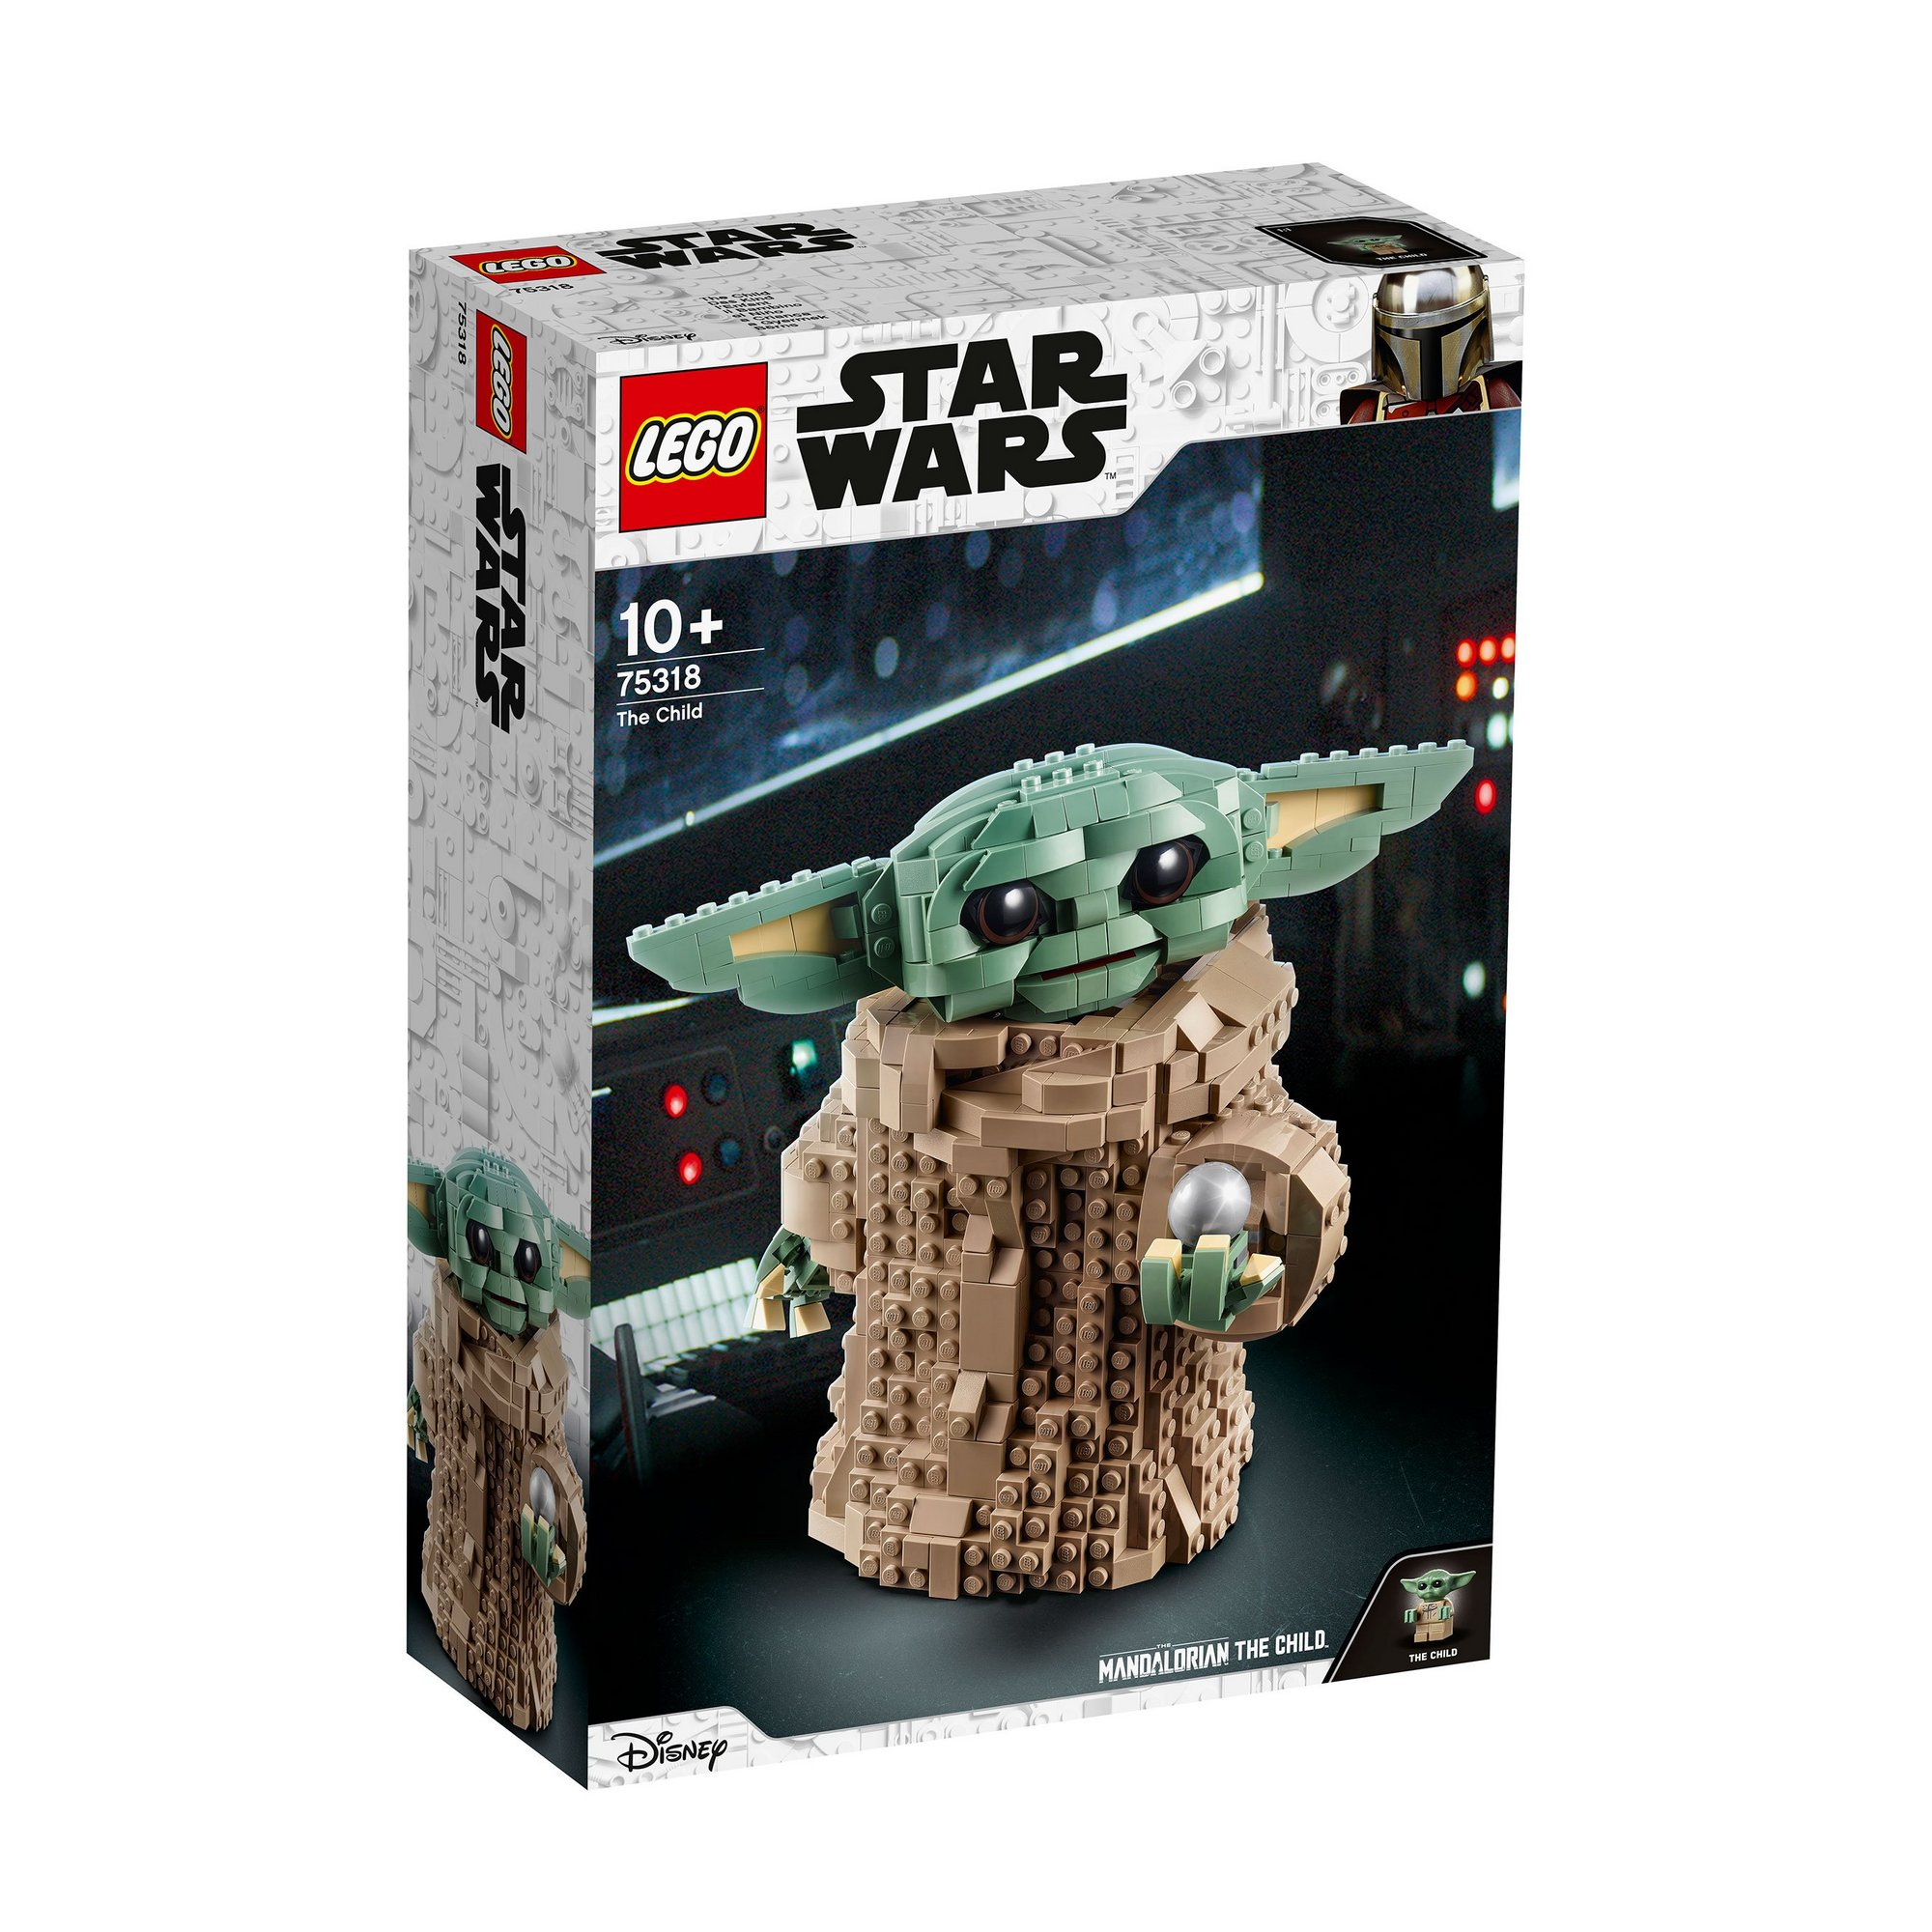 Image of LEGO Star Wars The Child